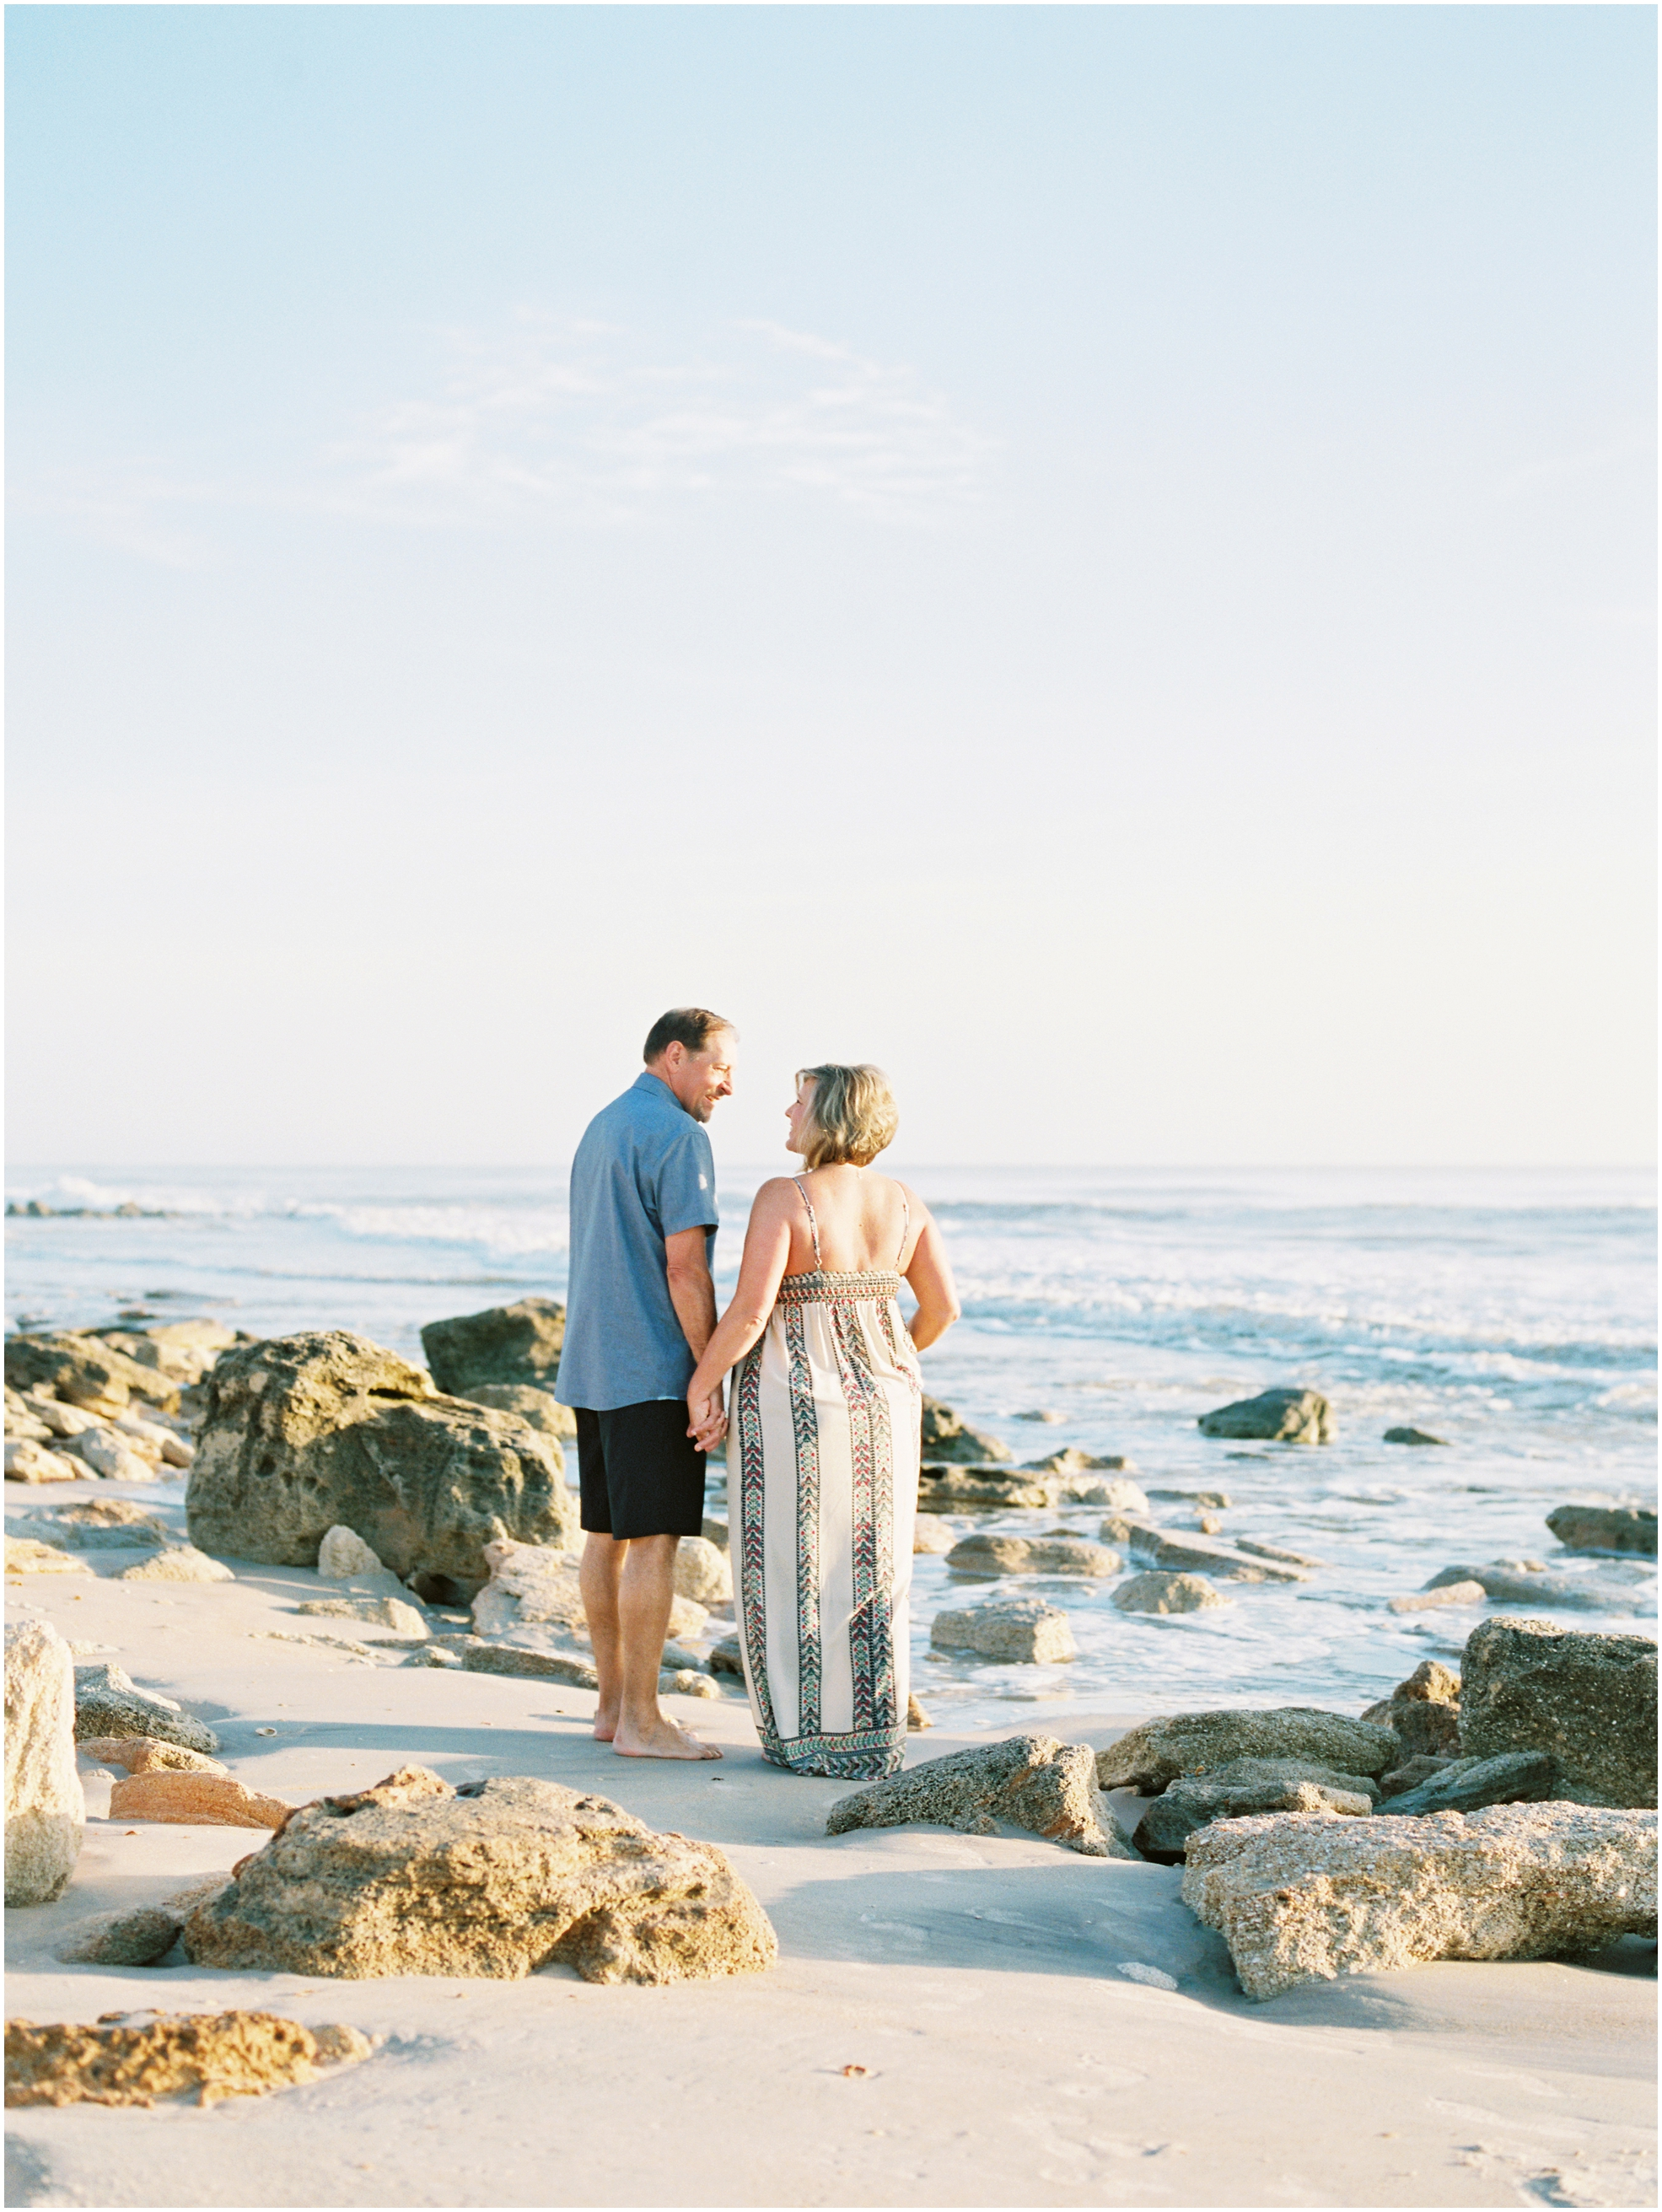 Lisa Silva Photography- Jacksonville, St. Augustine, Amelia Island, Ponte Vedra Beach, North East Florida Fine Art Film Photographer- Anniversary Session at Washington Oaks in Palm Coast, Florida_0020.jpg